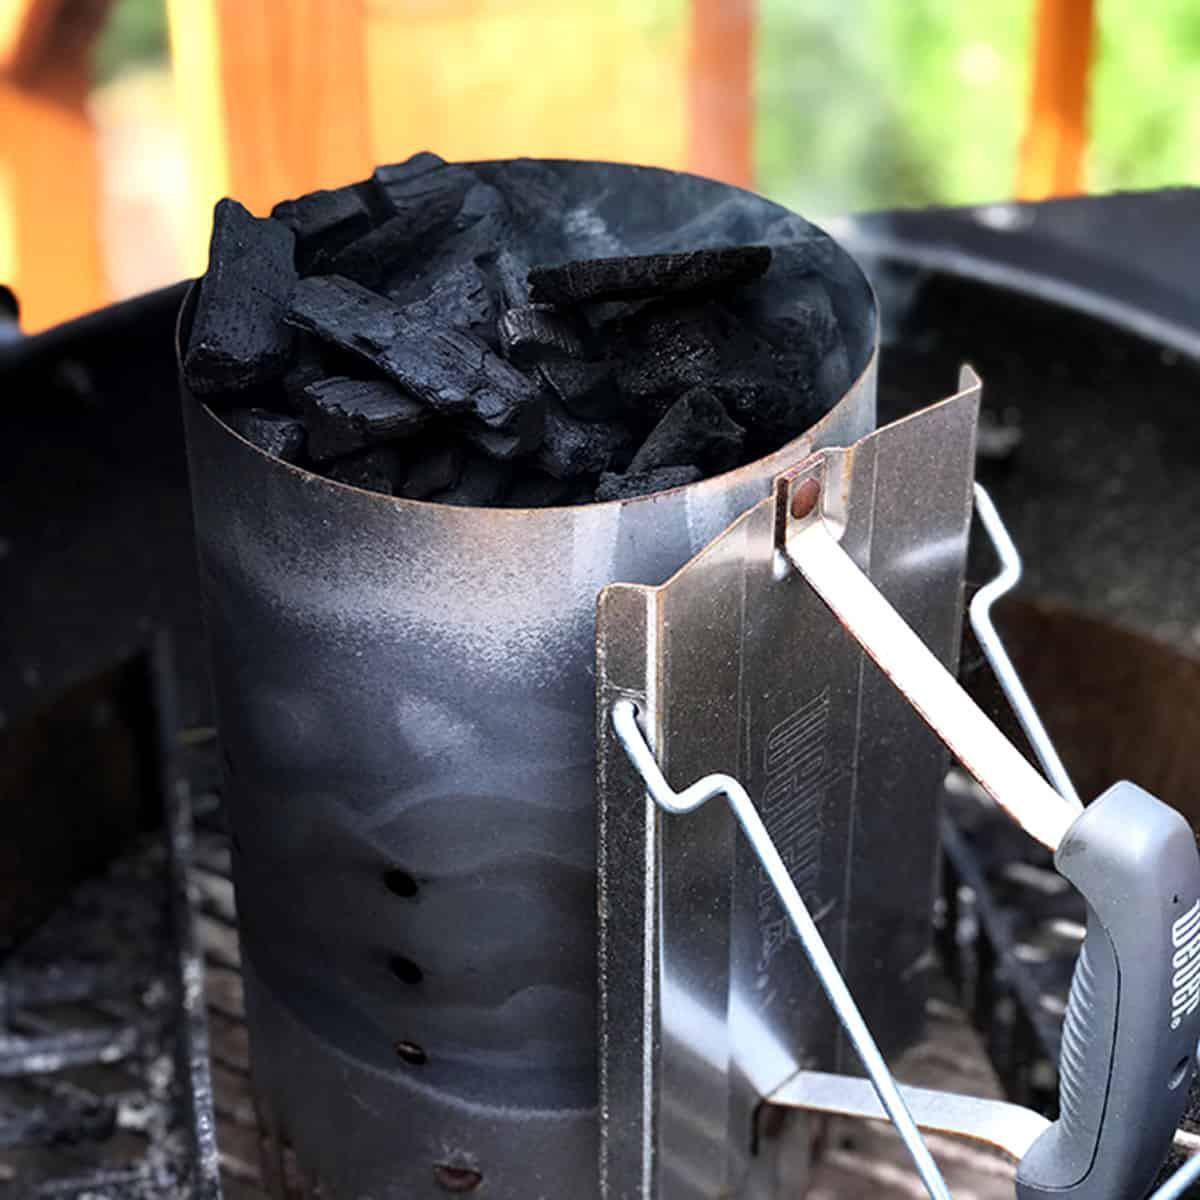 a charcoal chimney that has just been lit, sitting in a grill.